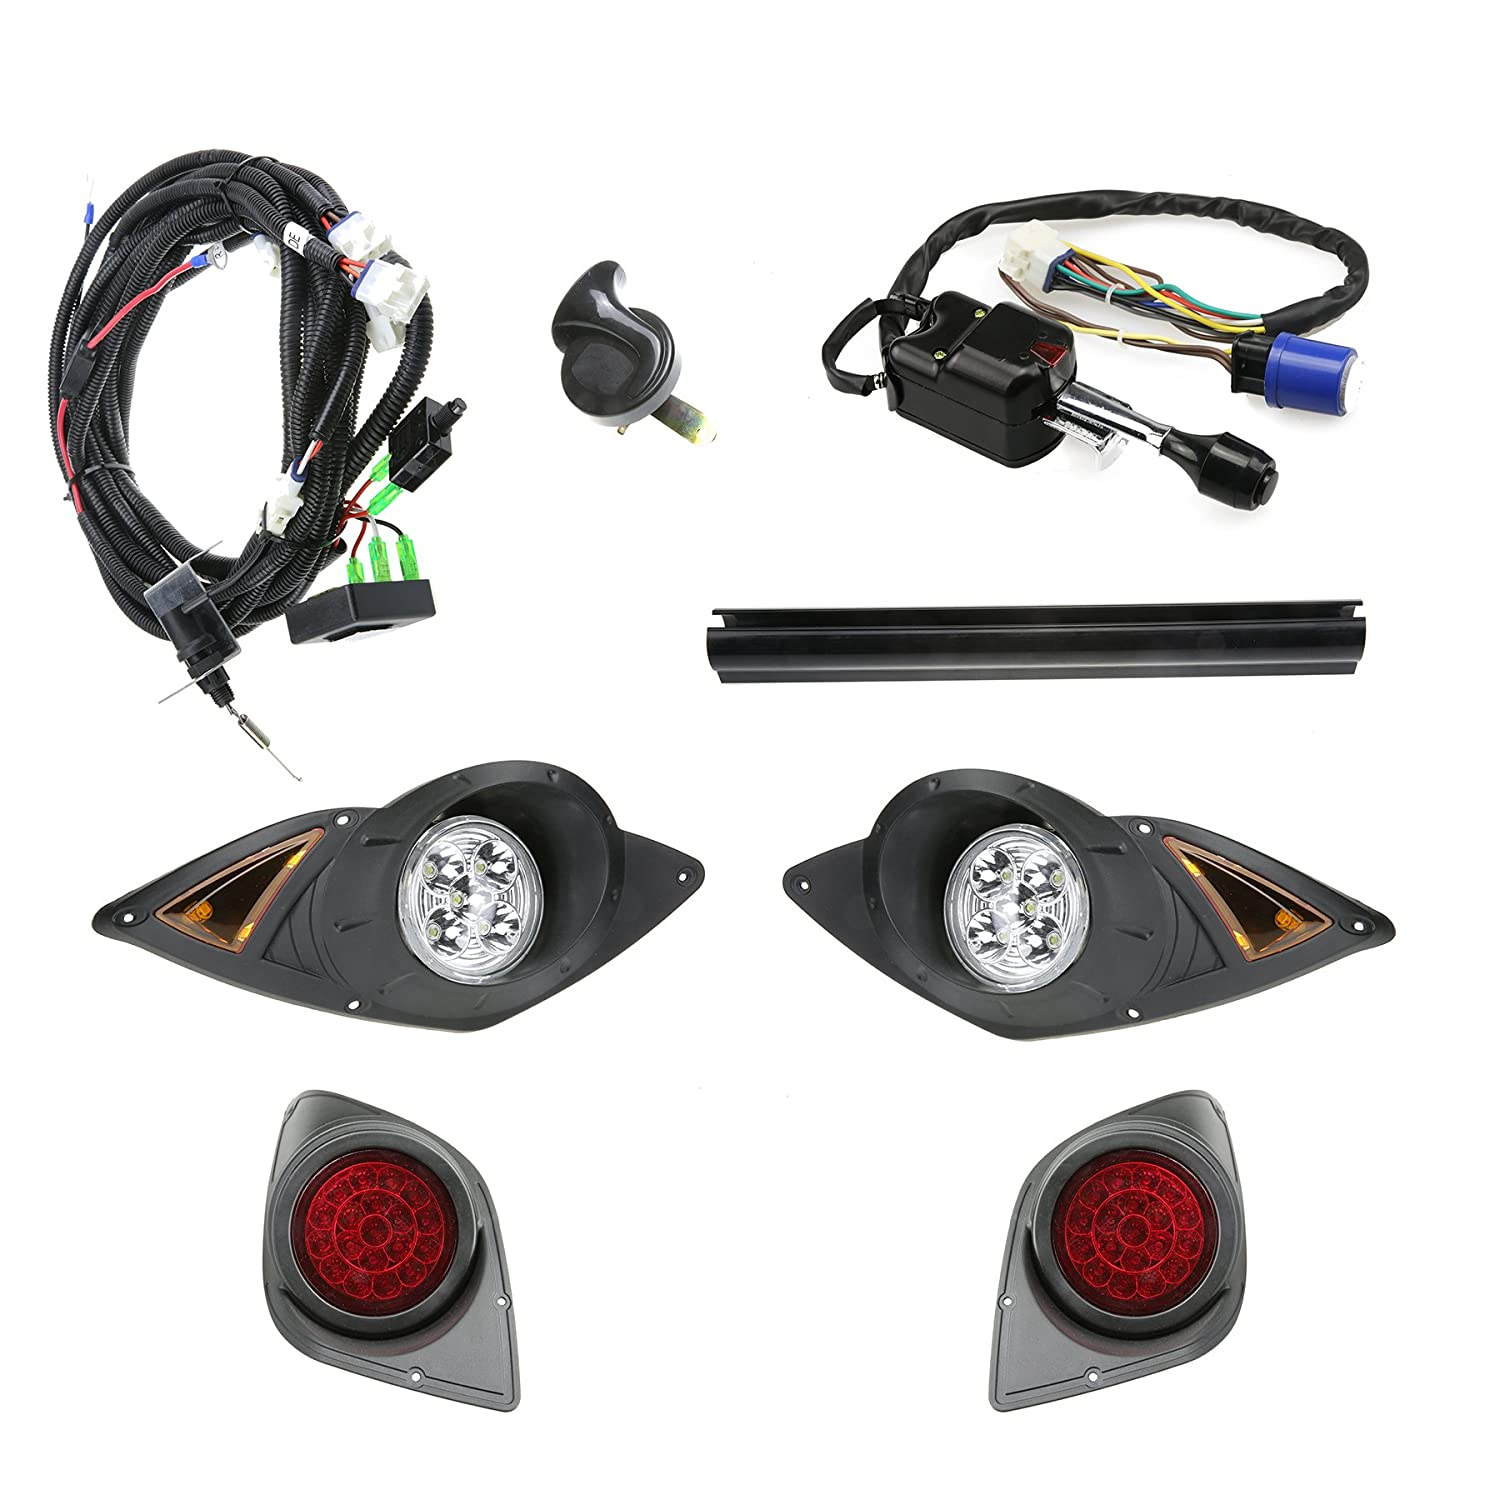 New Recpro Yamaha Drive G29 Golf Cart 2007 Up Deluxe All Ignition Wiring Harness Led Street Legal Light Kit Sports Outdoors